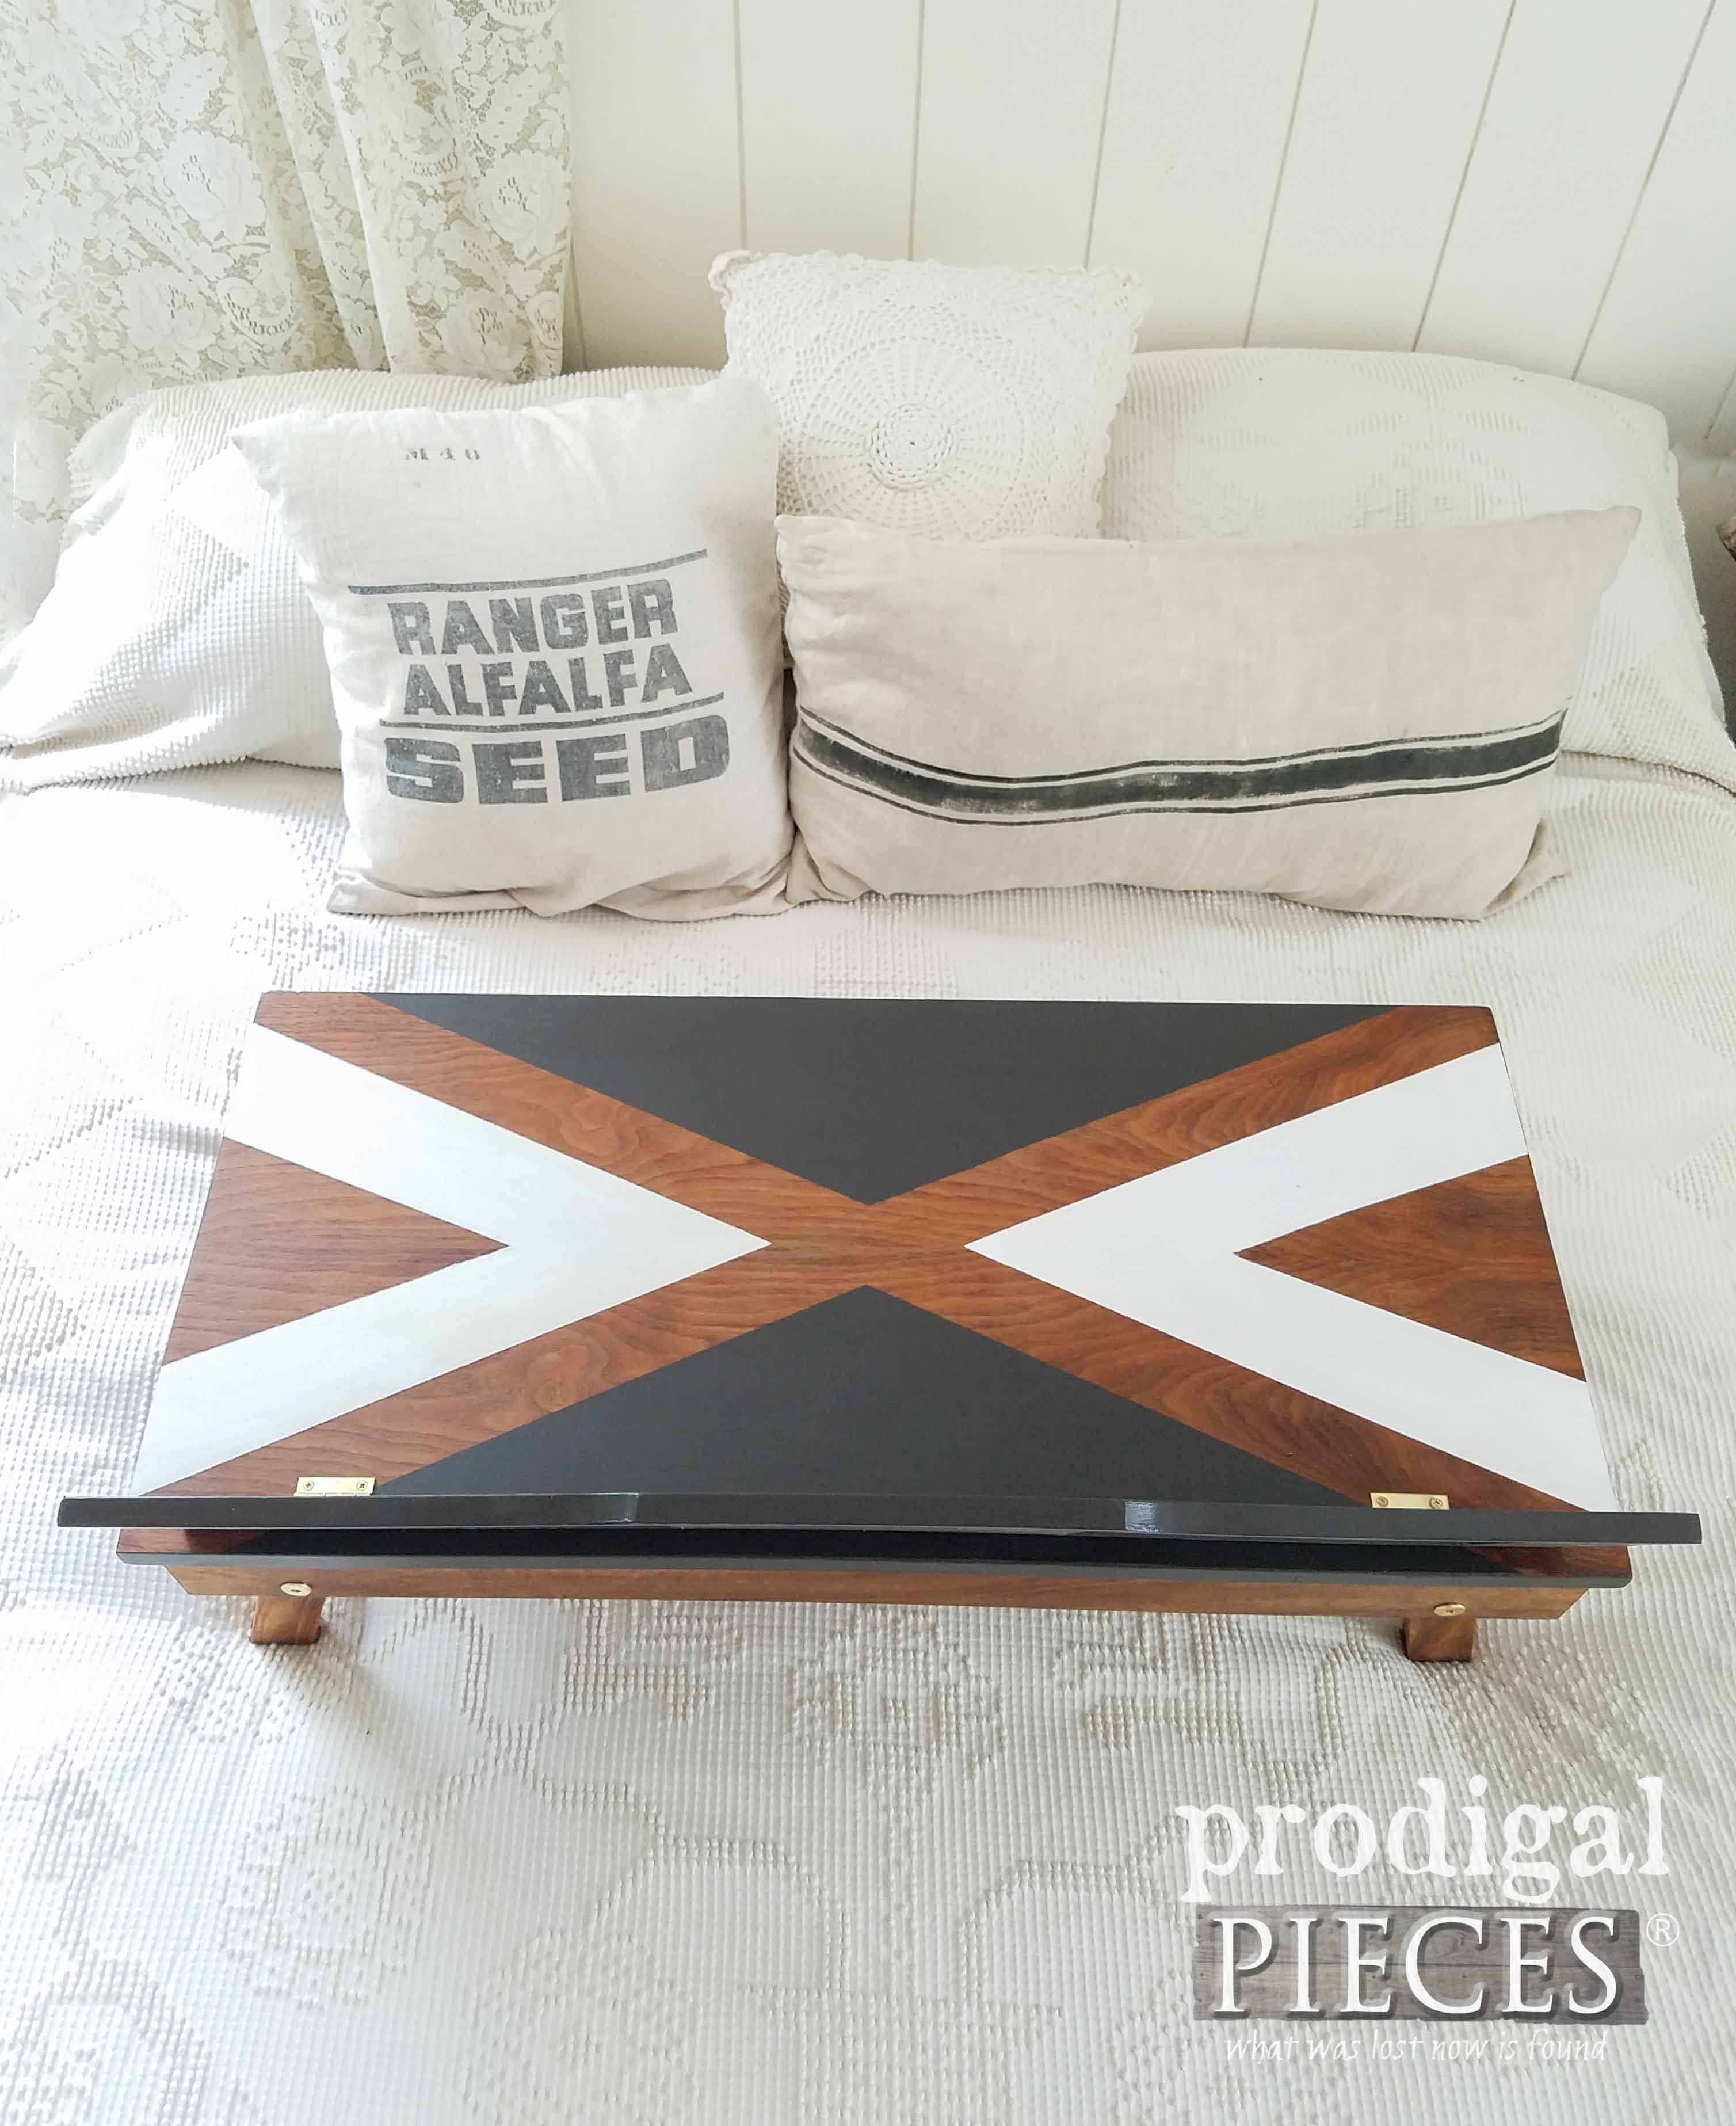 Upcycled Piano Bench becomes a Lap Desk with Storage by Prodigal Pieces | prodigalpieces.com